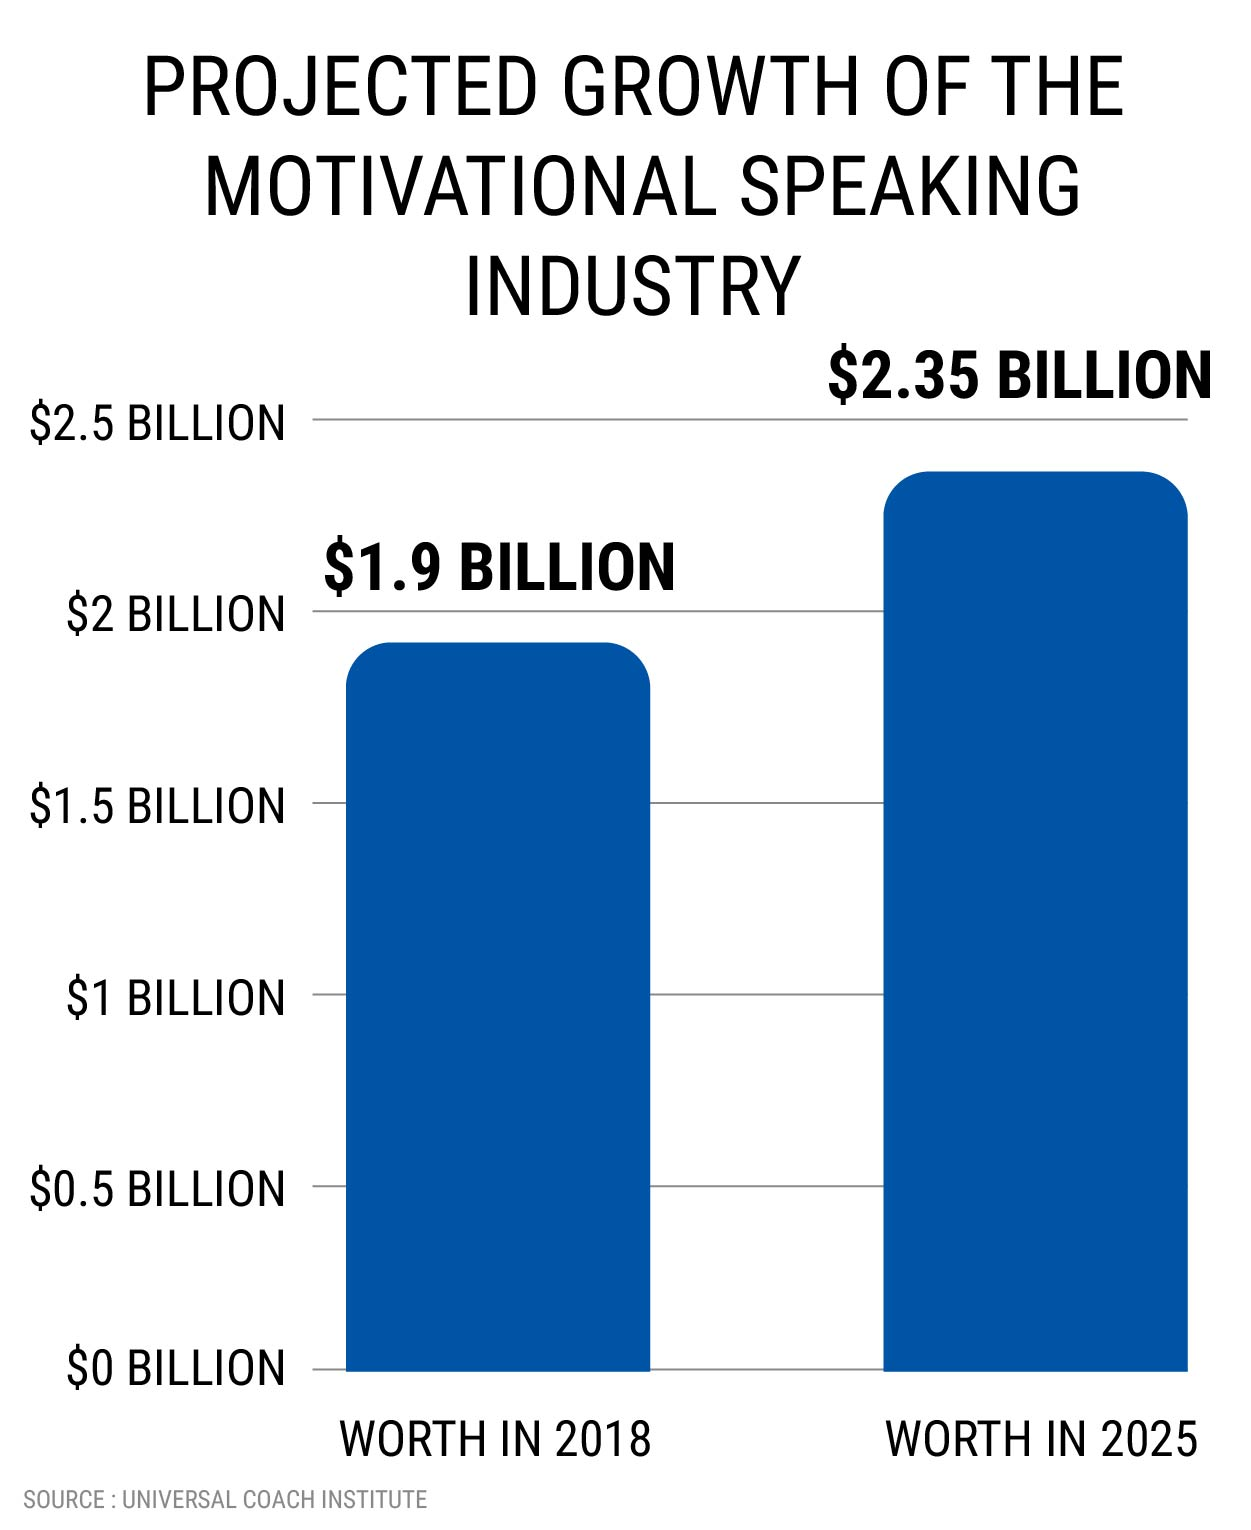 PROJECTED GROWTH OF THE MOTIVATIONAL SPEAKING INDUSTRY